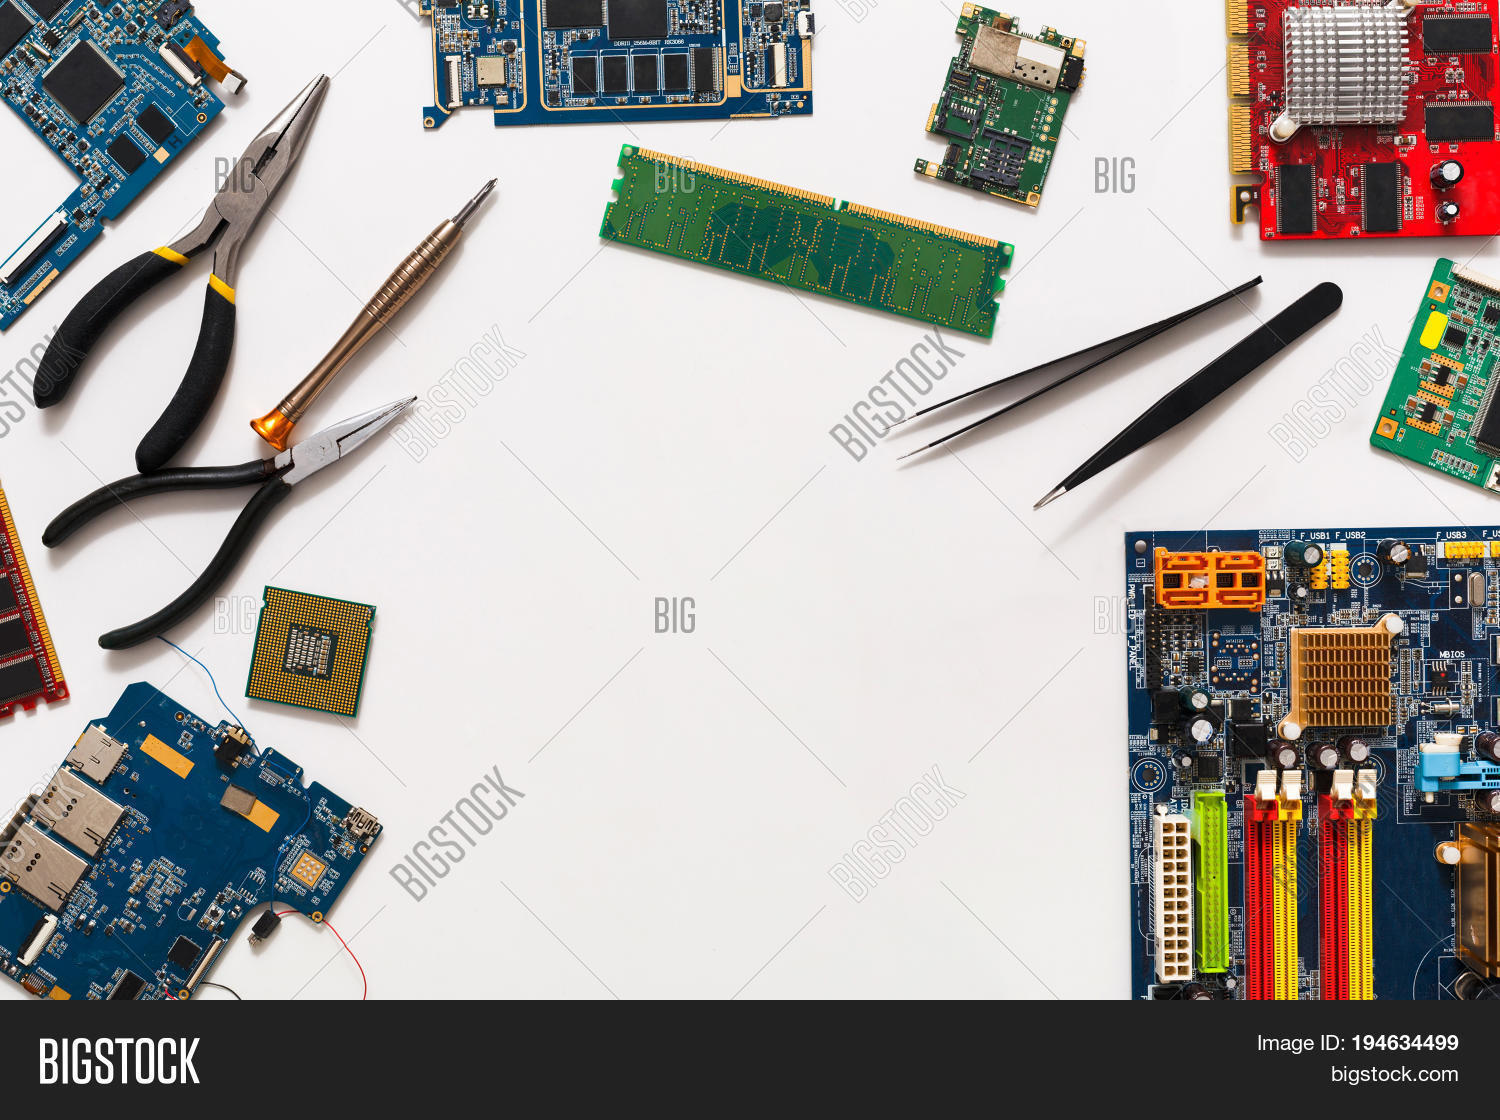 Computer Repair Image Photo Free Trial Bigstock Electronic Circuit Board Royalty Stock Photography And Upgrade Background Copy Space Motherboard Top View Flat Lay